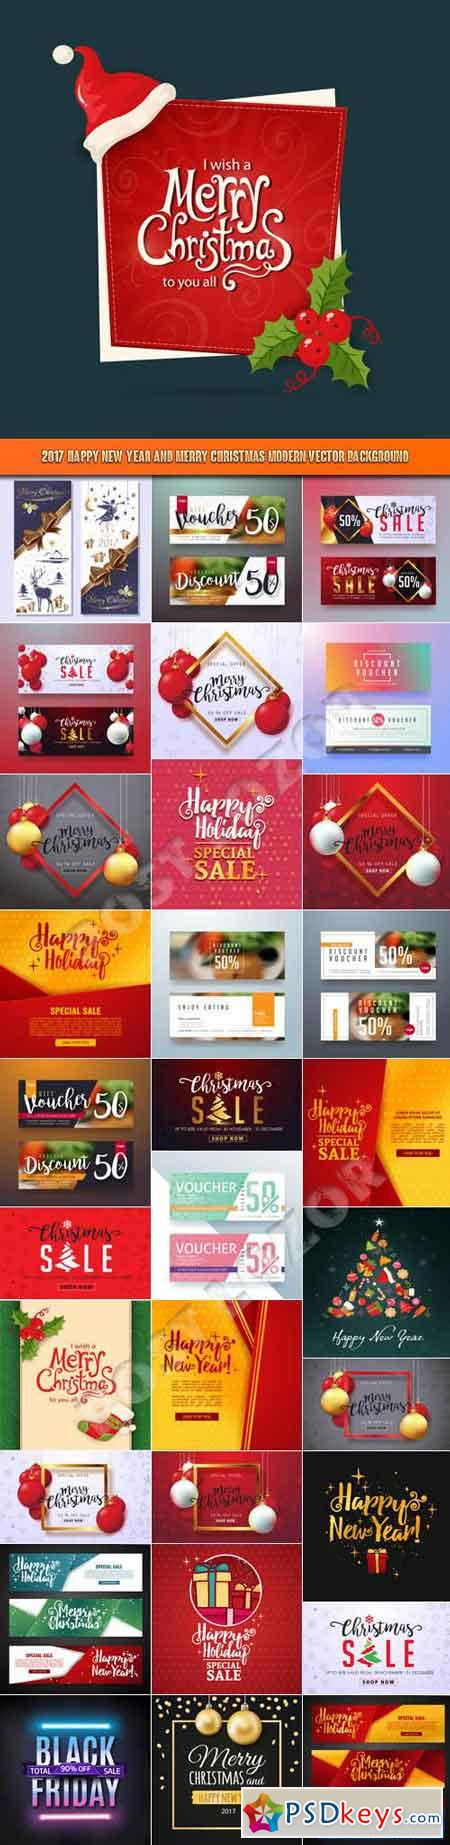 2017 Happy New Year and Merry Christmas modern vector background